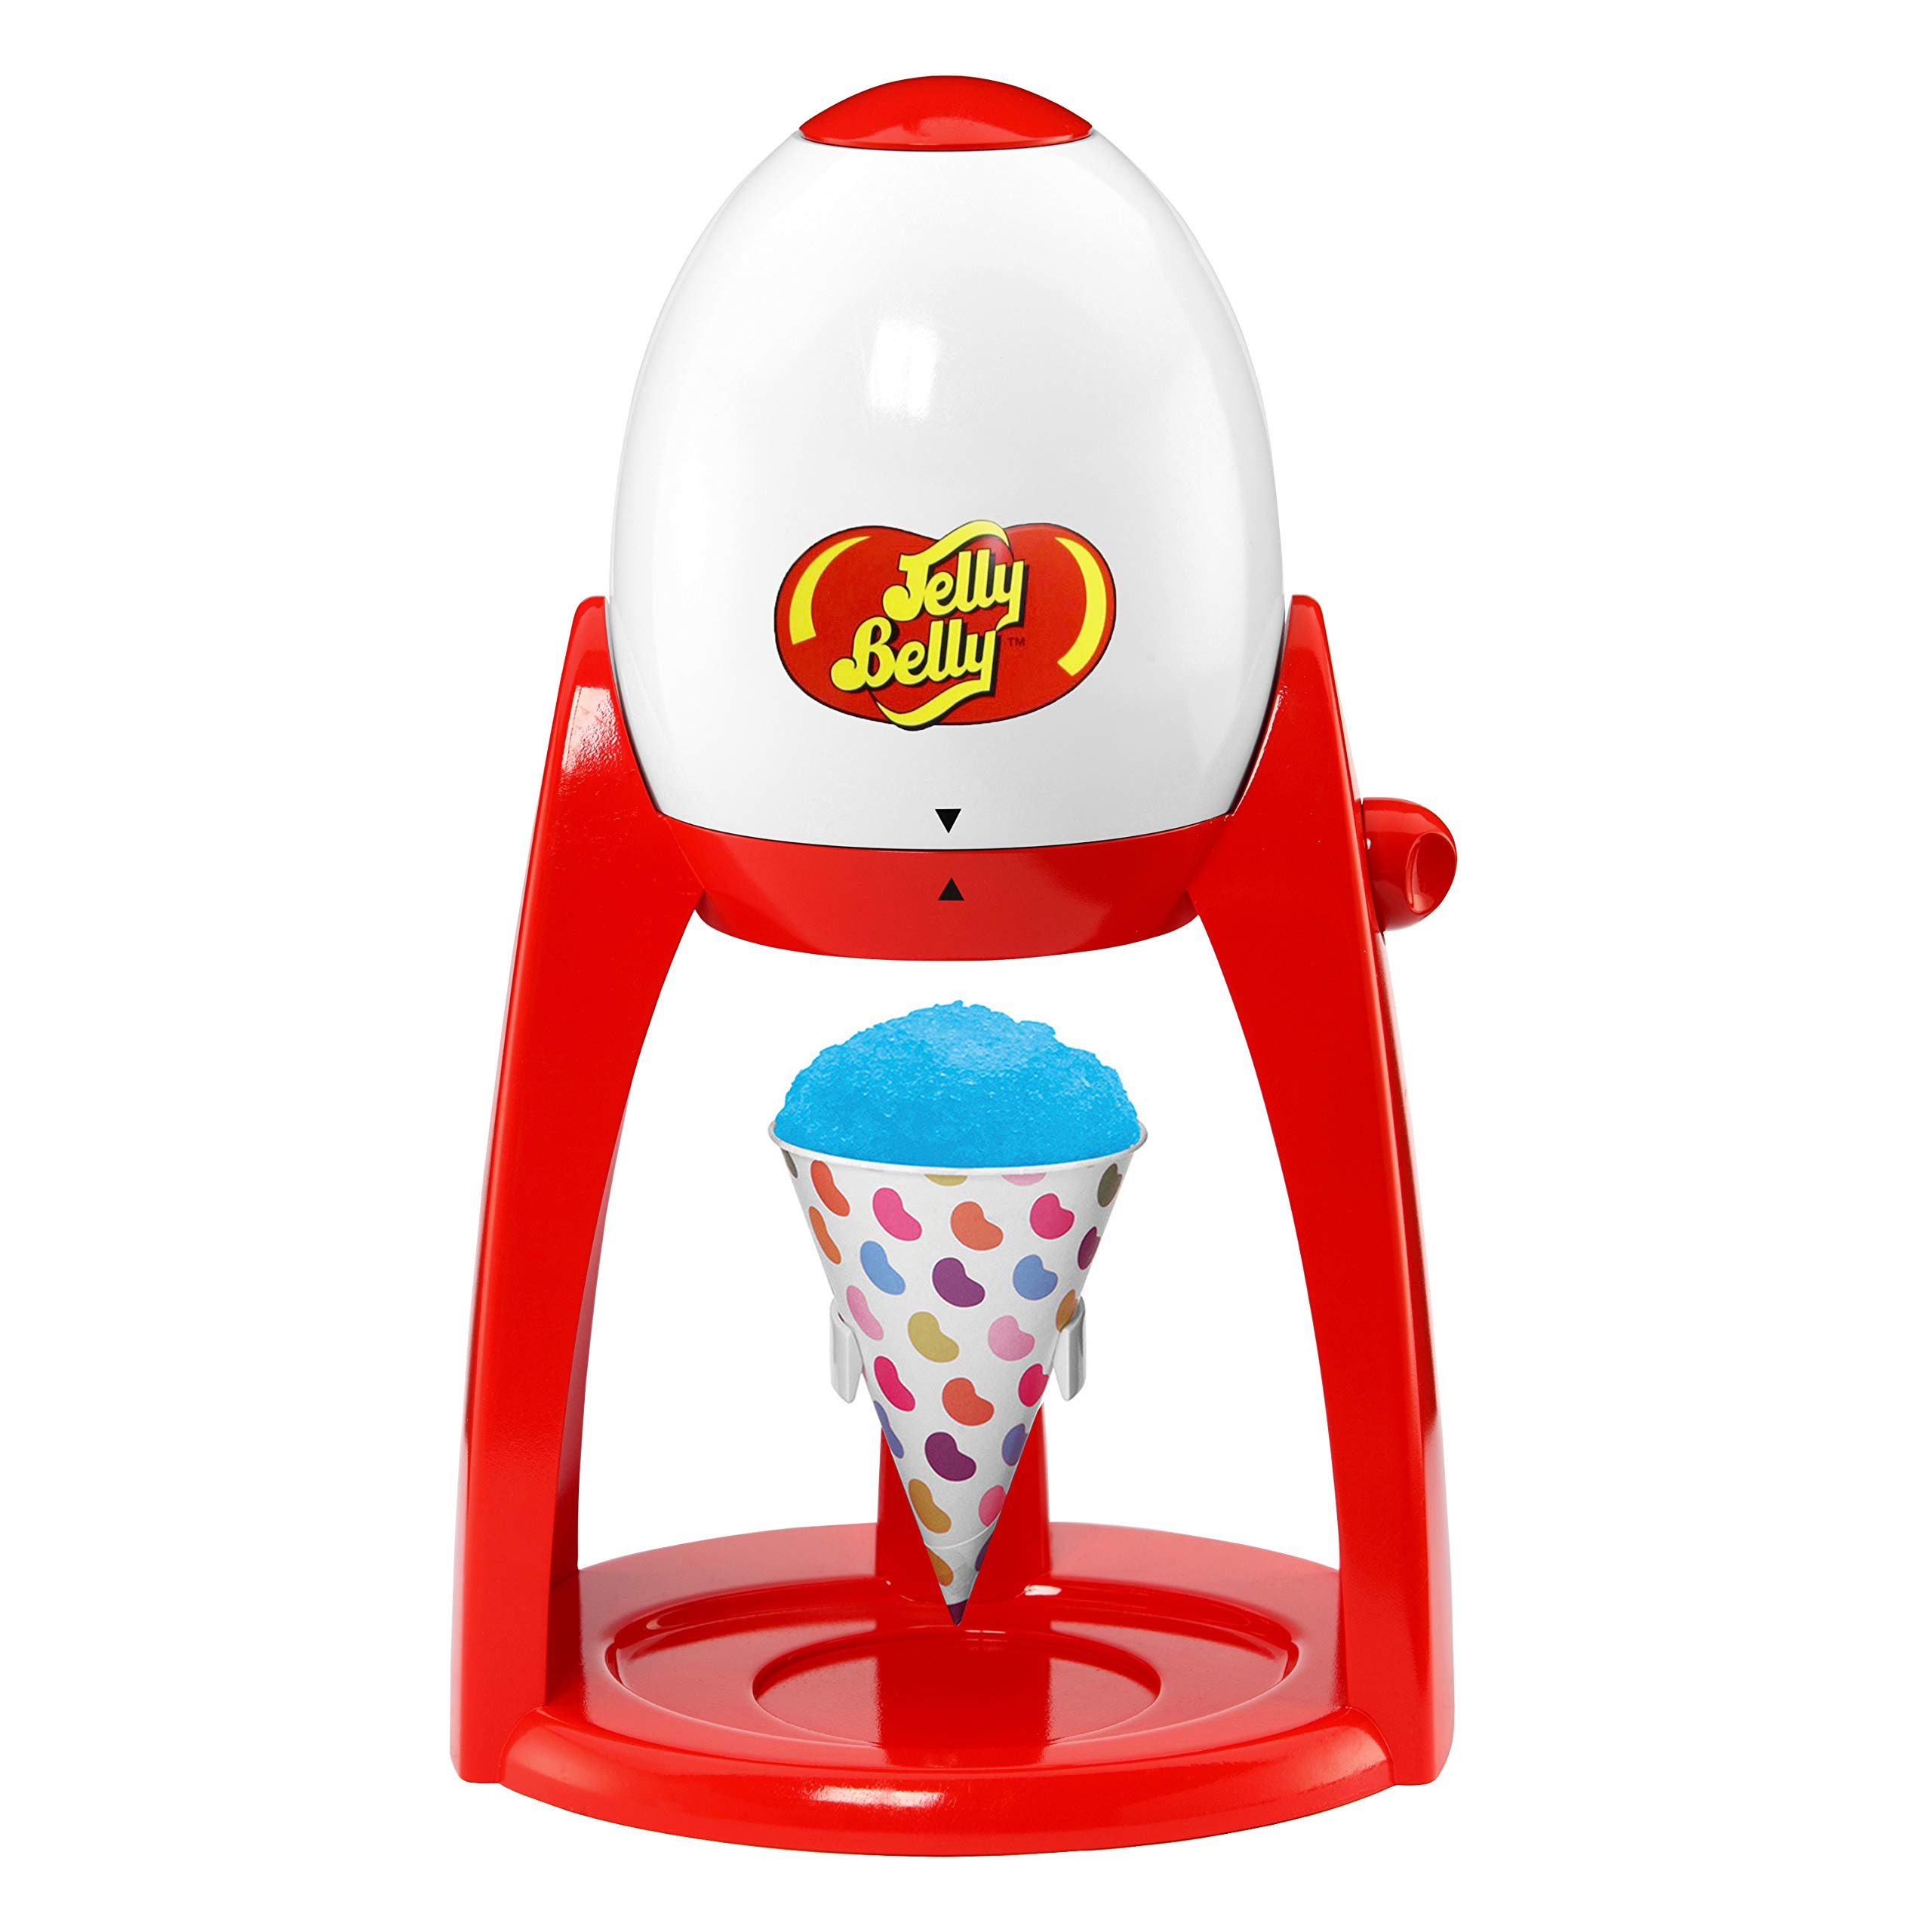 Jelly Belly JB15335 Easy to Use Electric Snow Cone Maker Fast Fun and Easy Icy Treat, Red by West Bend